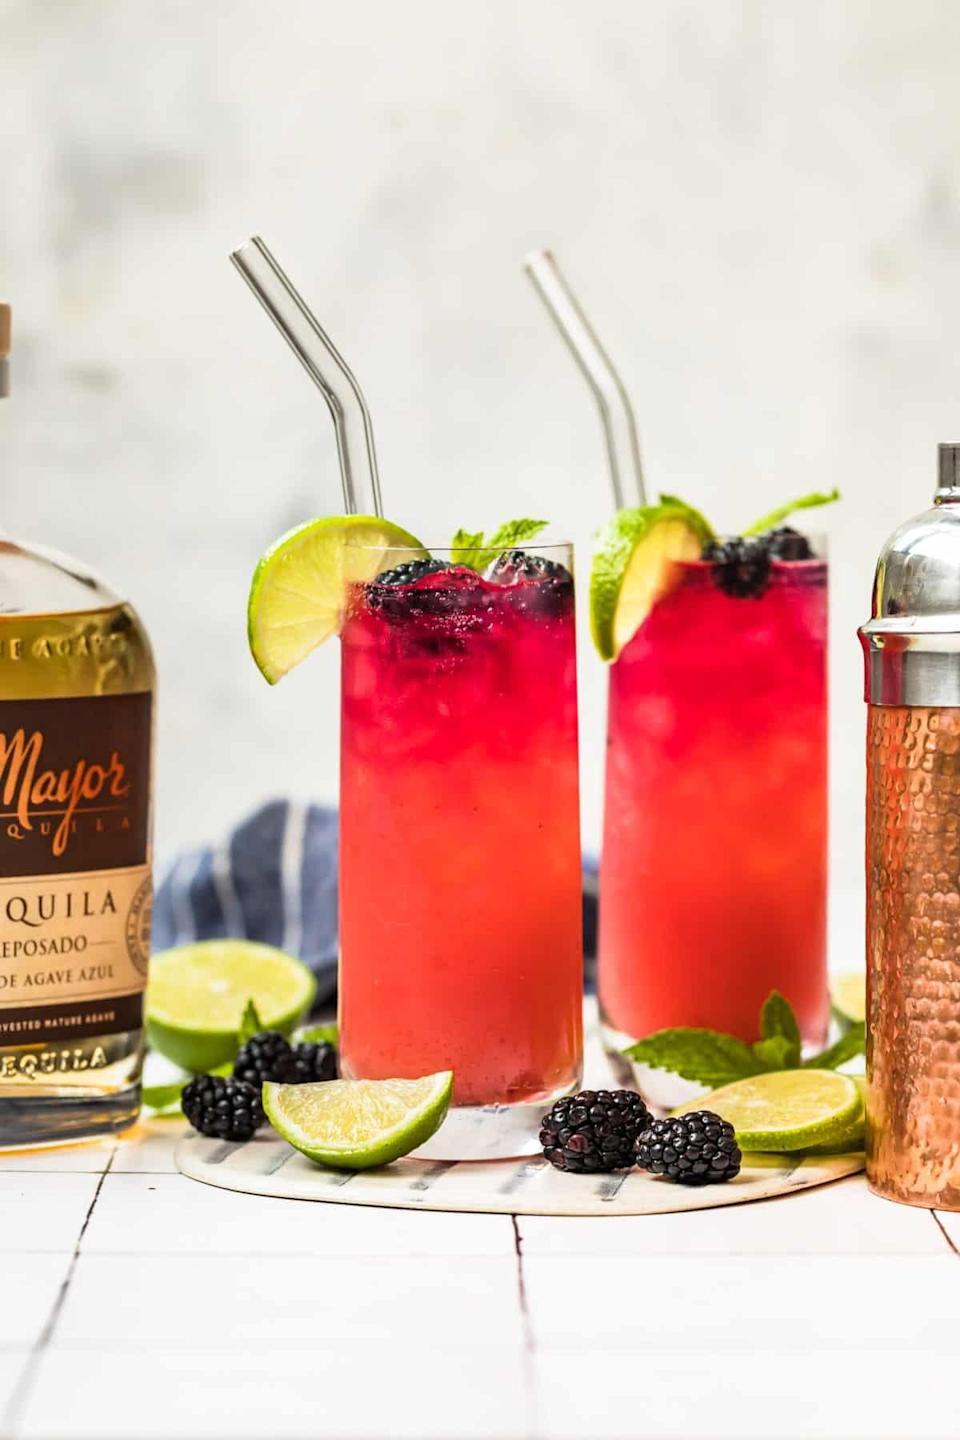 """<p>A hot day in Texas calls for an ice-cold paloma! This magenta drink is filled with rich flavor, and not to mention, a whole lot of tequila! Cheers to you, Texas!</p> <p><strong>Get the recipe</strong>: <a href=""""https://www.popsugar.com/buy?url=https%3A%2F%2Fwww.thecookierookie.com%2Fblackberry-paloma-recipe%2F&p_name=blackberry%20paloma&retailer=thecookierookie.com&evar1=yum%3Aus&evar9=47471653&evar98=https%3A%2F%2Fwww.popsugar.com%2Ffood%2Fphoto-gallery%2F47471653%2Fimage%2F47475203%2FTexas-Paloma&list1=cocktails%2Cdrinks%2Calcohol%2Crecipes&prop13=api&pdata=1"""" class=""""link rapid-noclick-resp"""" rel=""""nofollow noopener"""" target=""""_blank"""" data-ylk=""""slk:blackberry paloma"""">blackberry paloma</a></p>"""